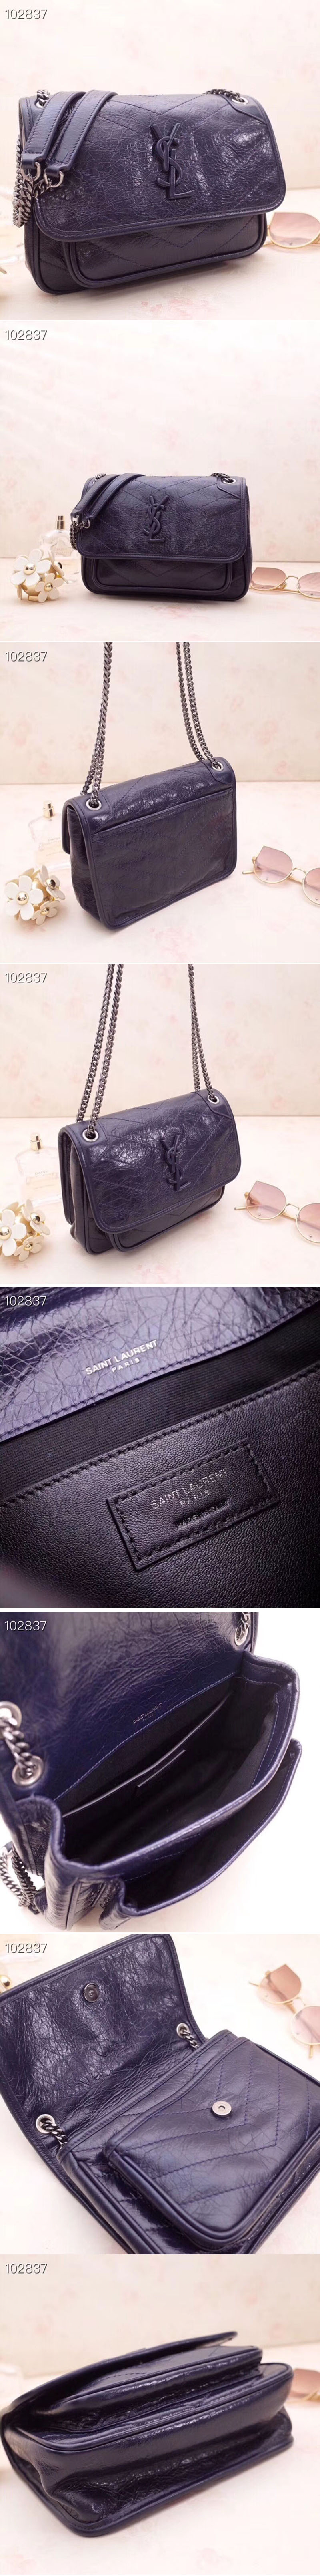 Replica YSL Saint Laurent Niki Baby In Crinkled Vintage Leather 533037 Navy Blue